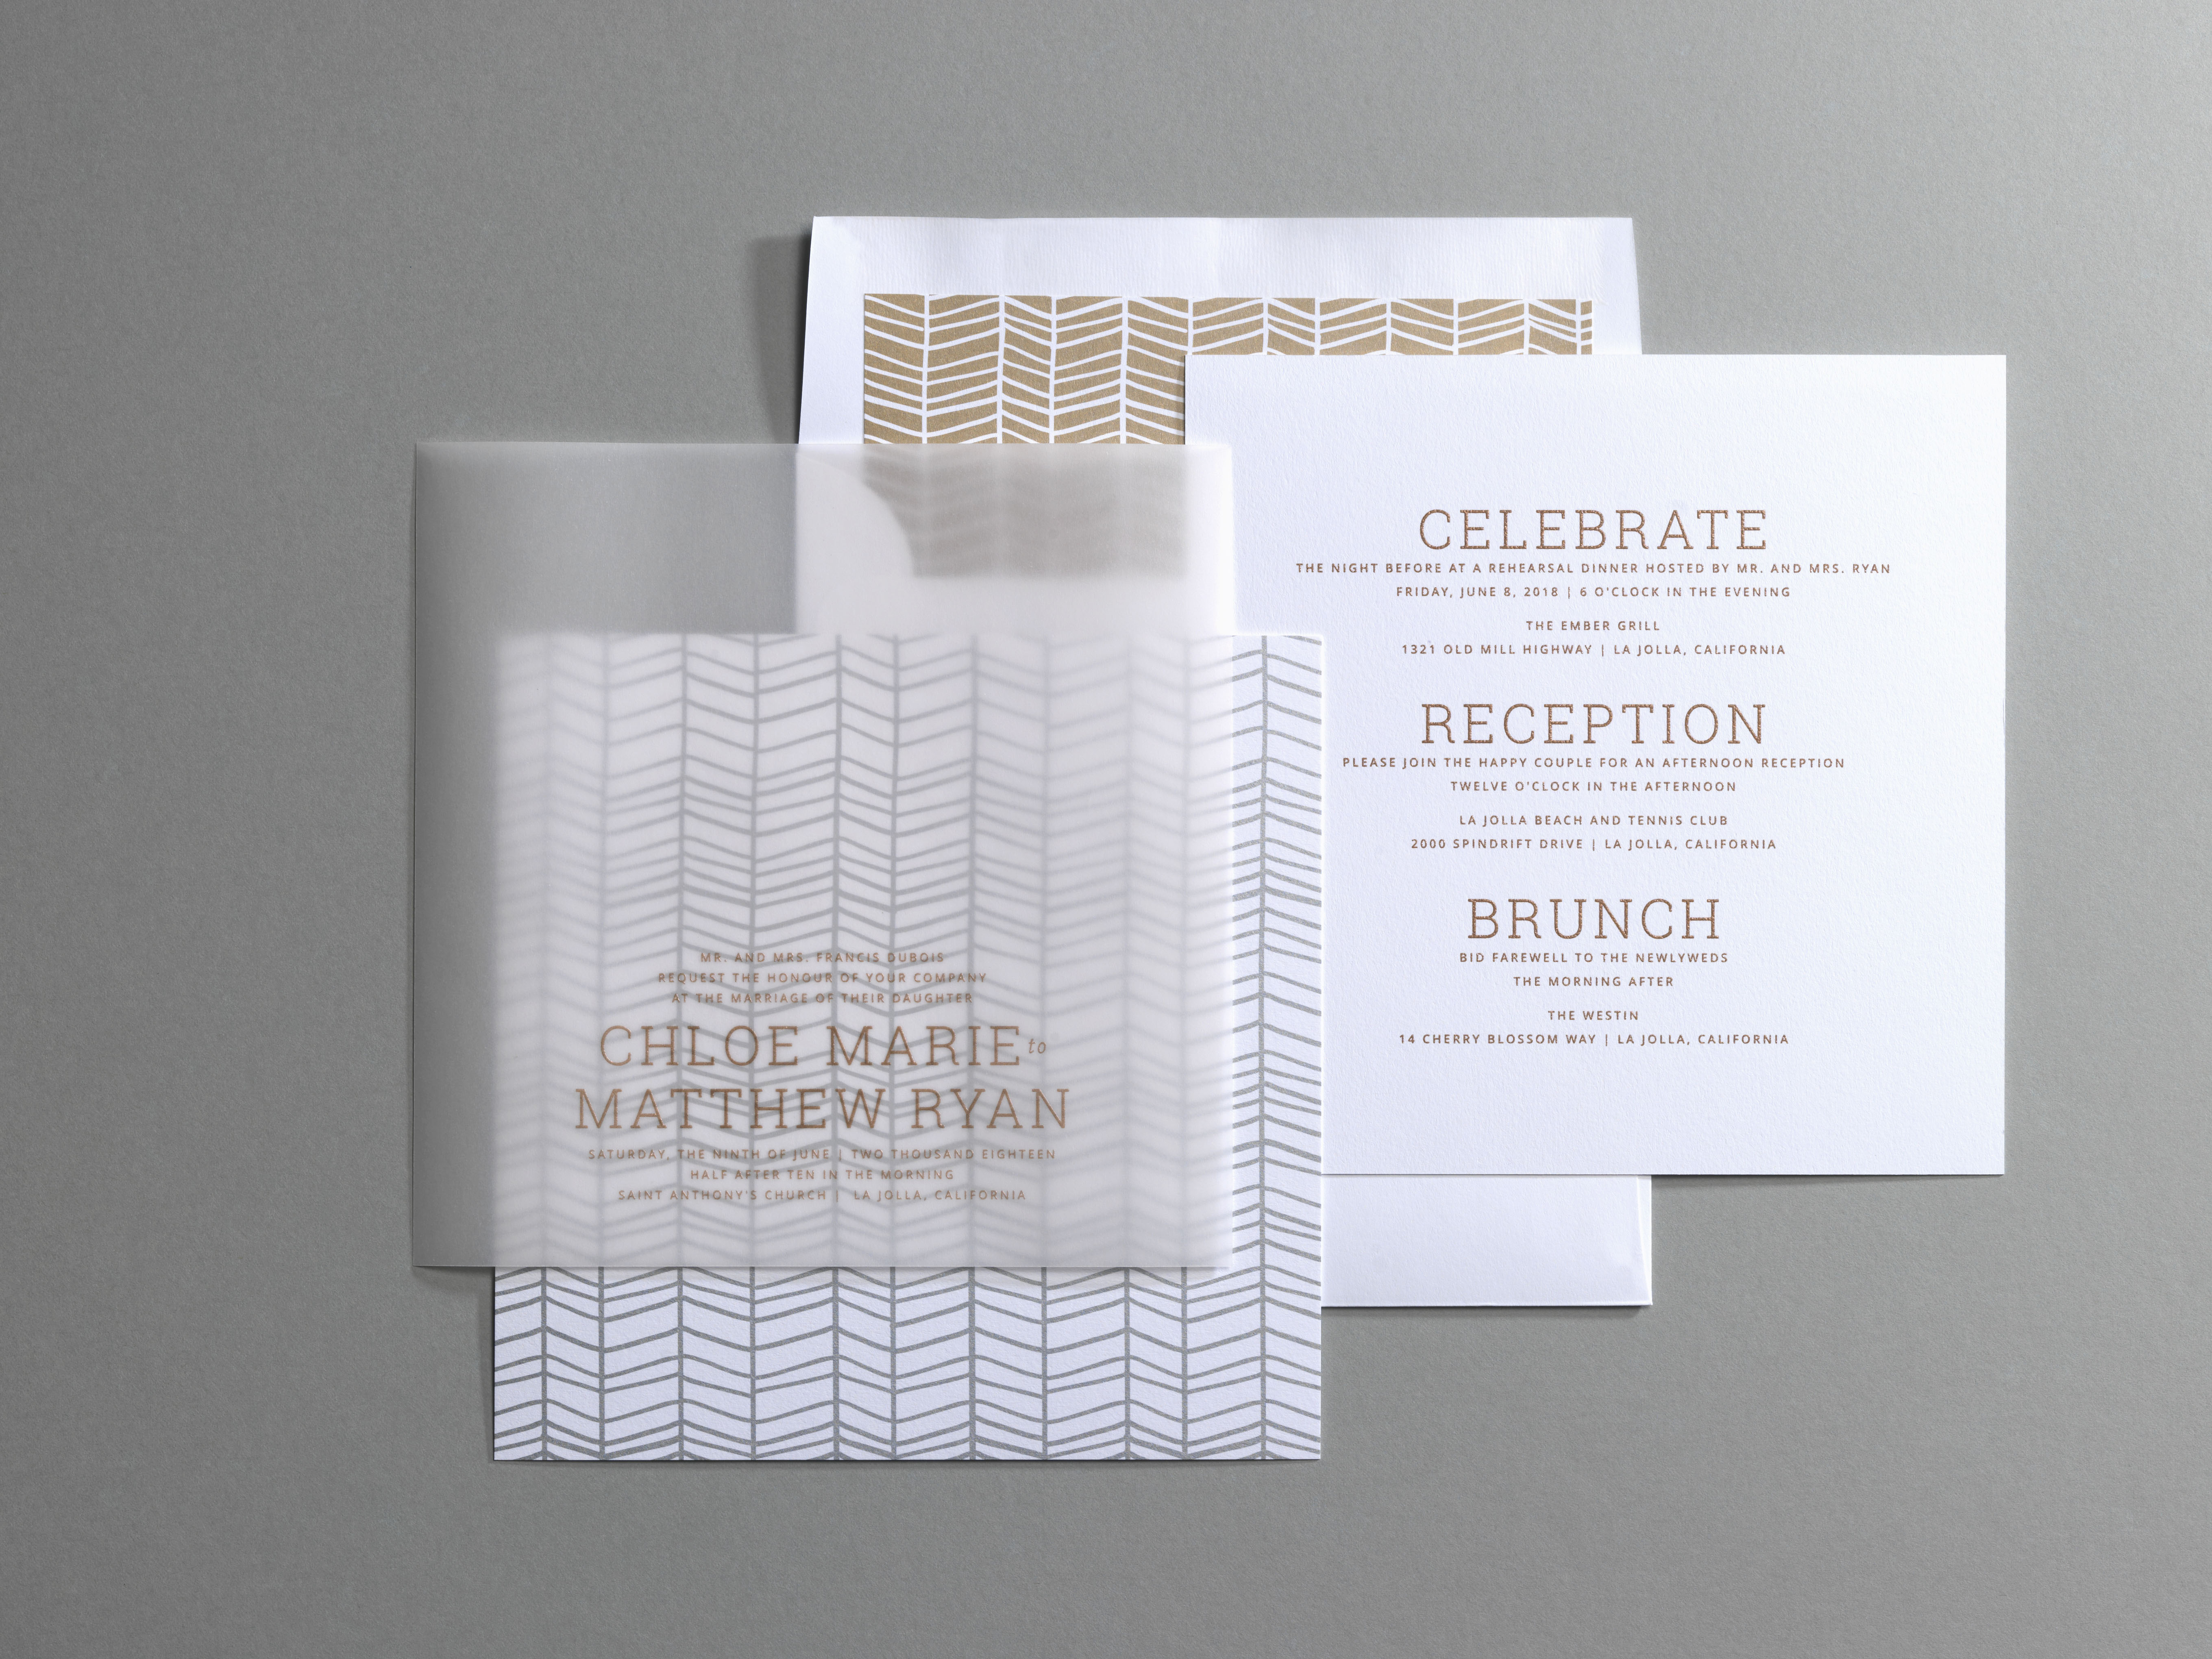 This Week, It Was Announced That BRIDES Has Partnered Once Again With  Checkerboard To Produce BRIDES Fine Wedding Papers, A New Line Of Wedding  Stationary ...